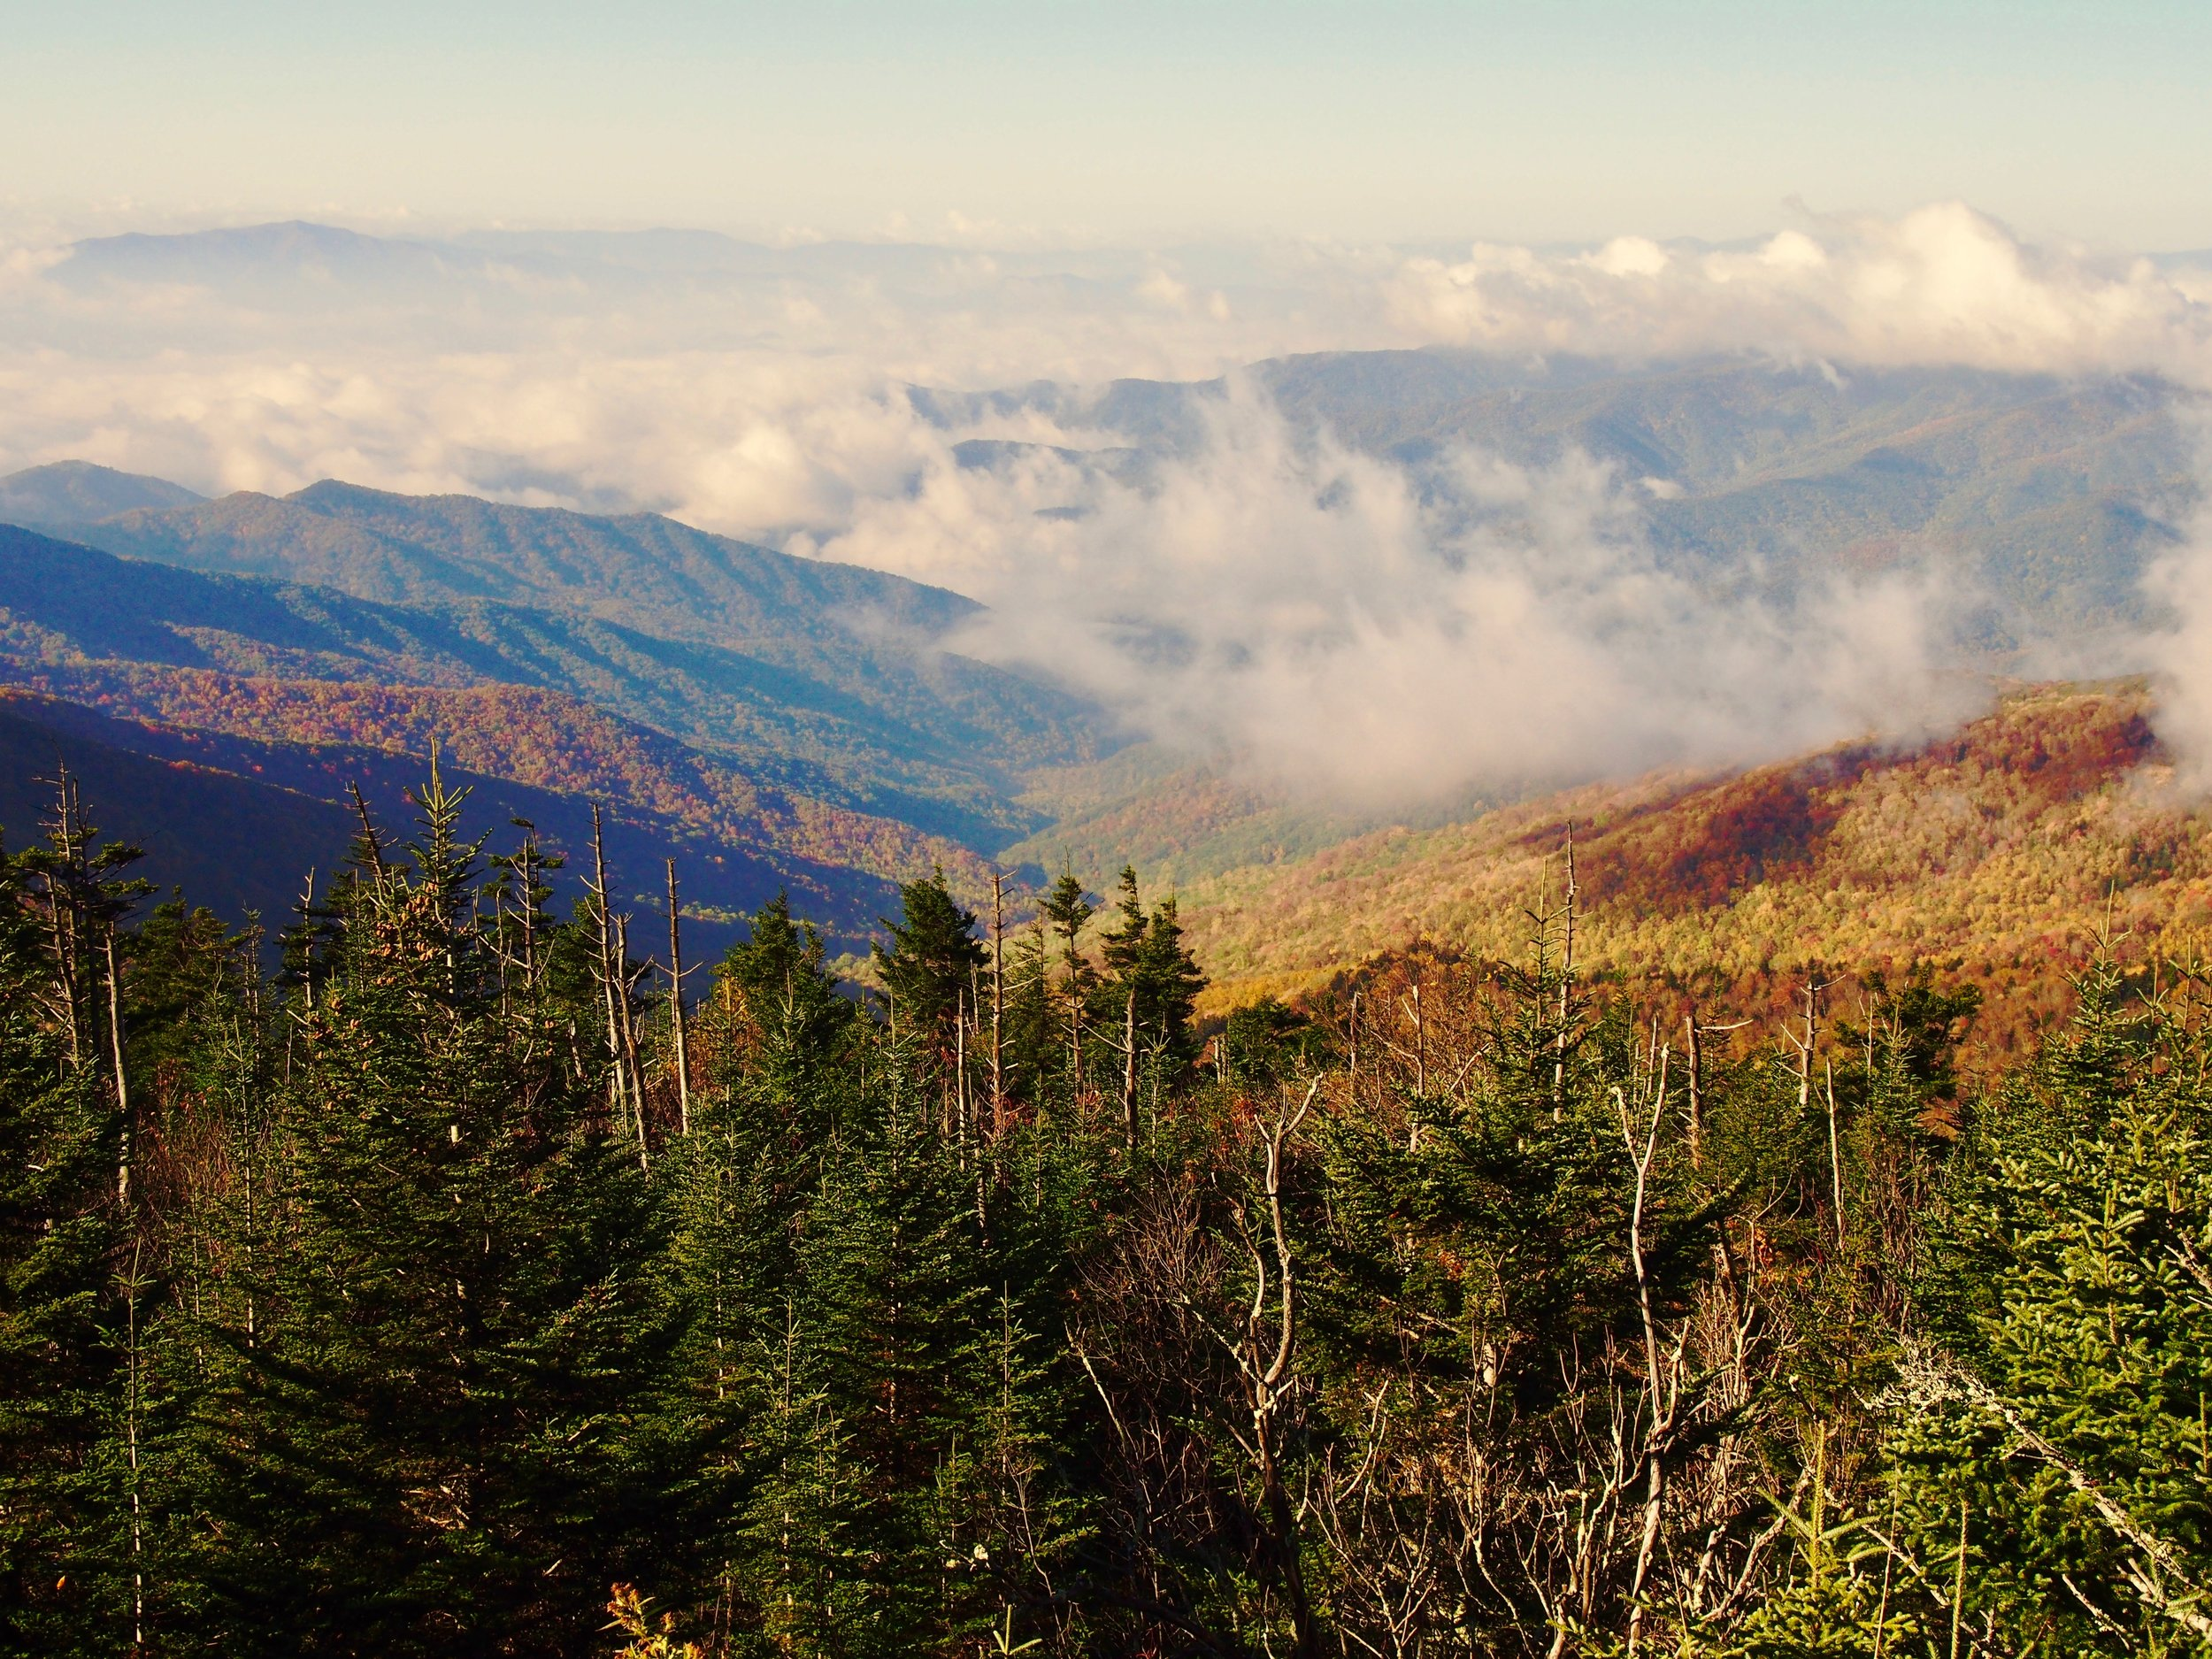 View from the Clingman's Dome Parking Lot.